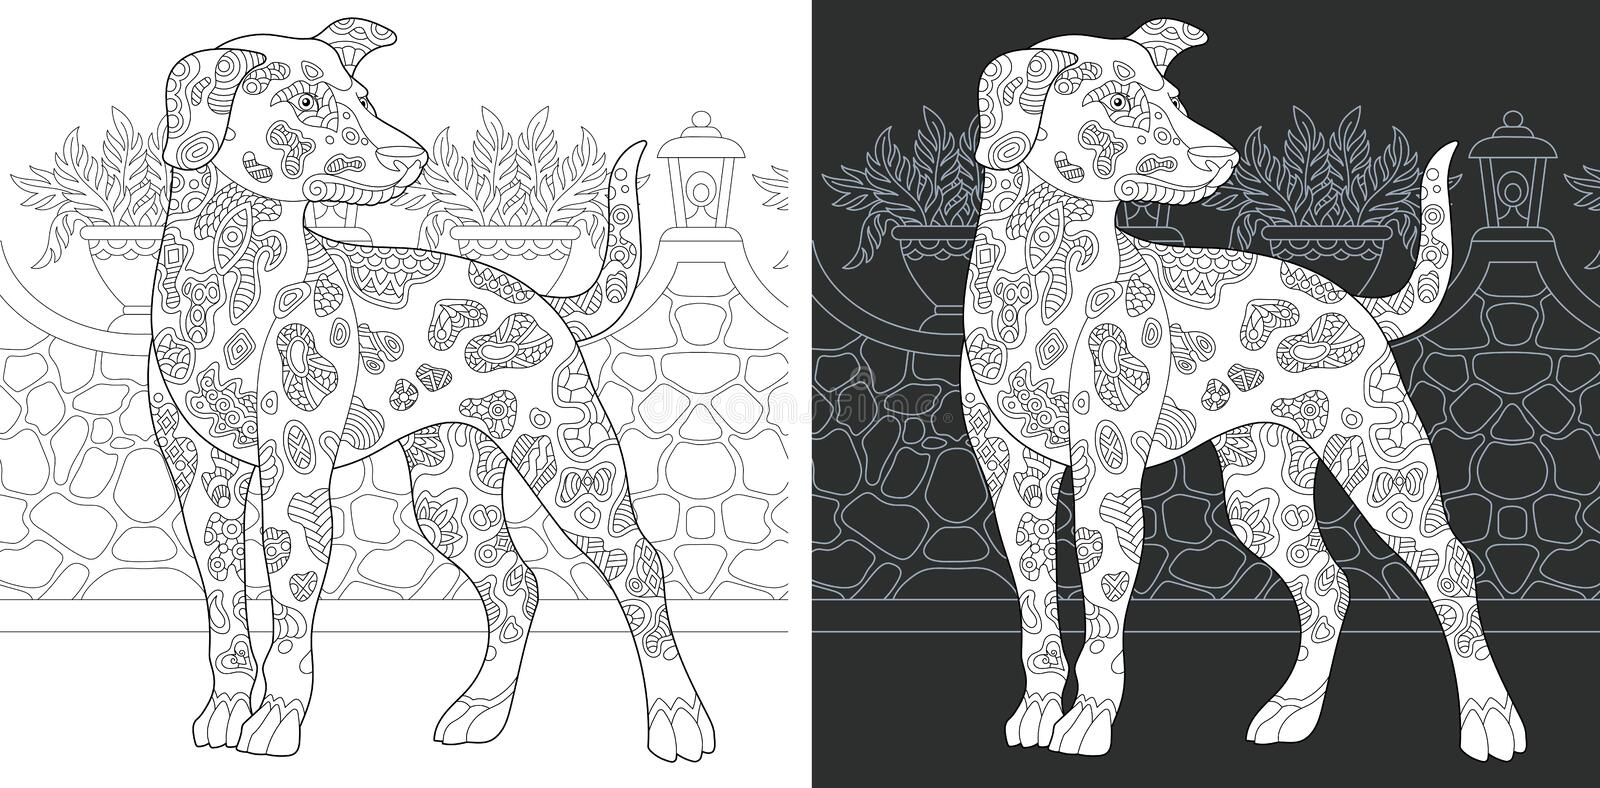 Coloring page with dalmatian dog royalty free stock photography